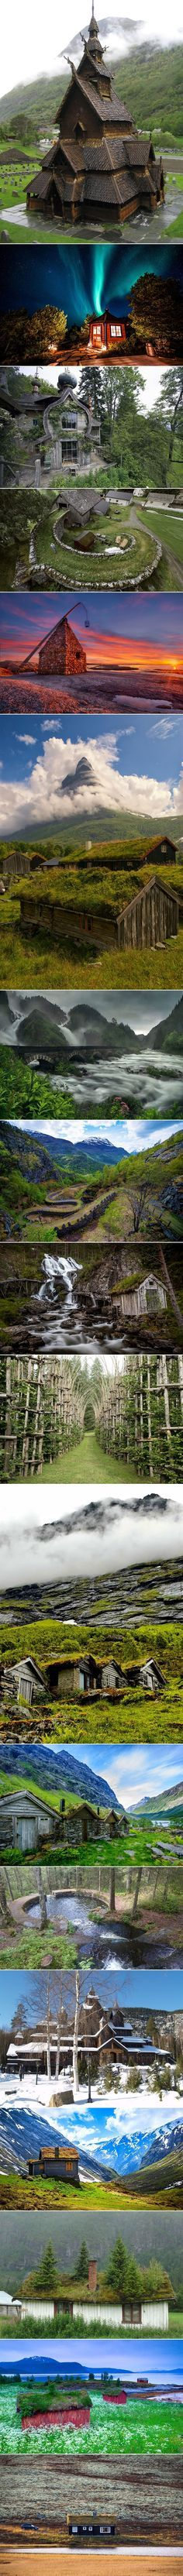 Norway..land of trolls and beautiful architecture